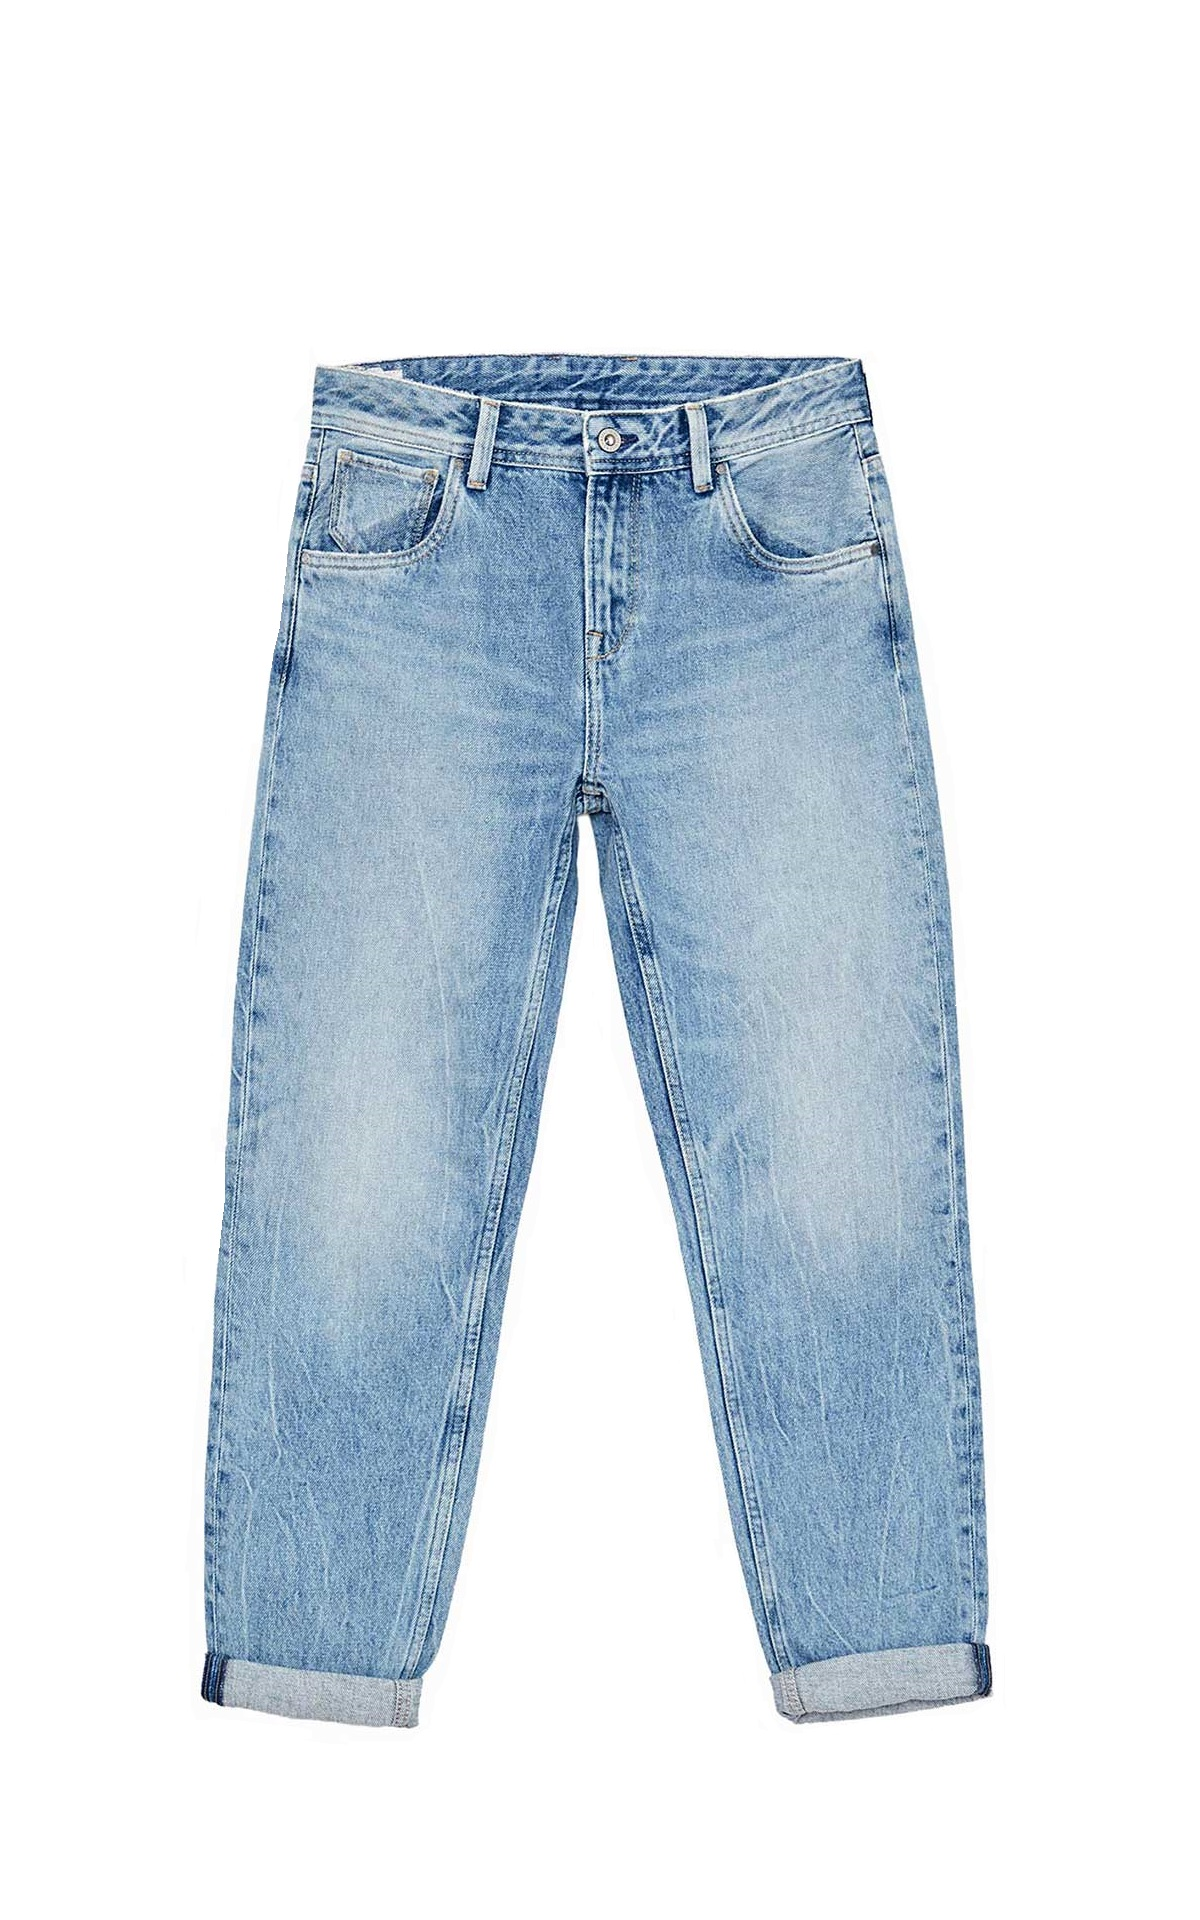 Light blue carrot jeans Dua Lipa x Pepe Jeans